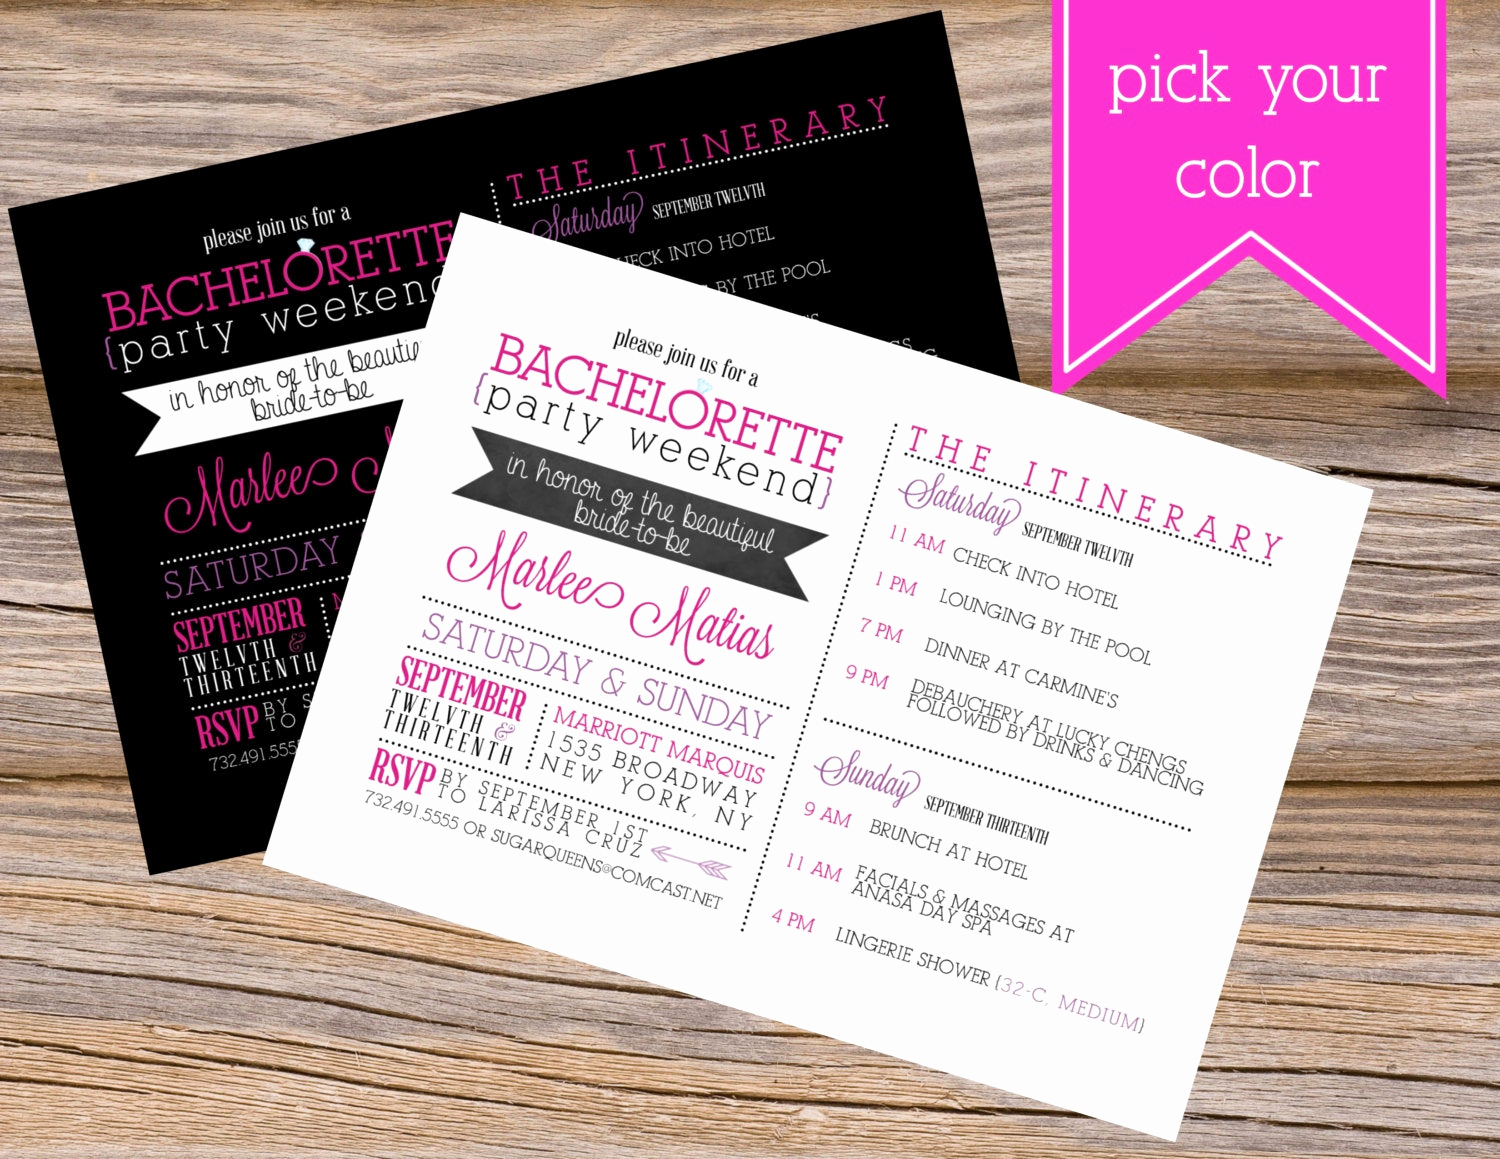 Wedding Weekend Invitation Wording Awesome Bachelorette Party Weekend Wedding Invitation Diy by